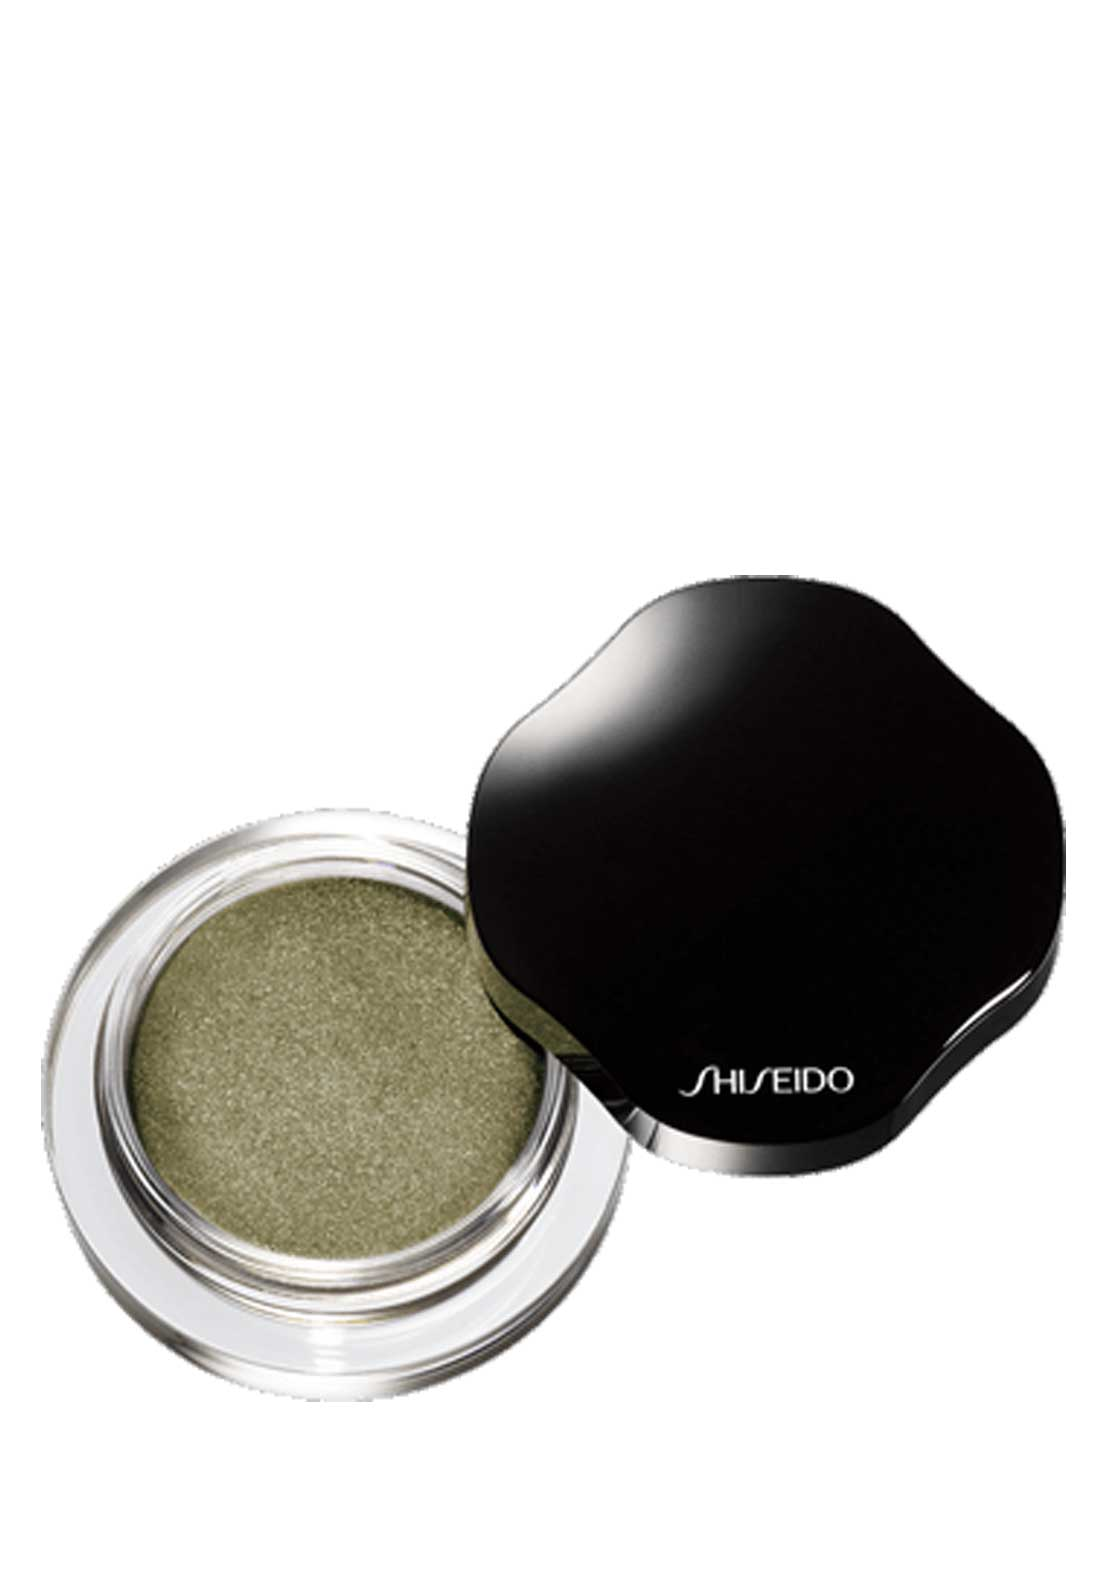 Shiseido Shimmering Cream Eye Shadow, GR732 Binchotan